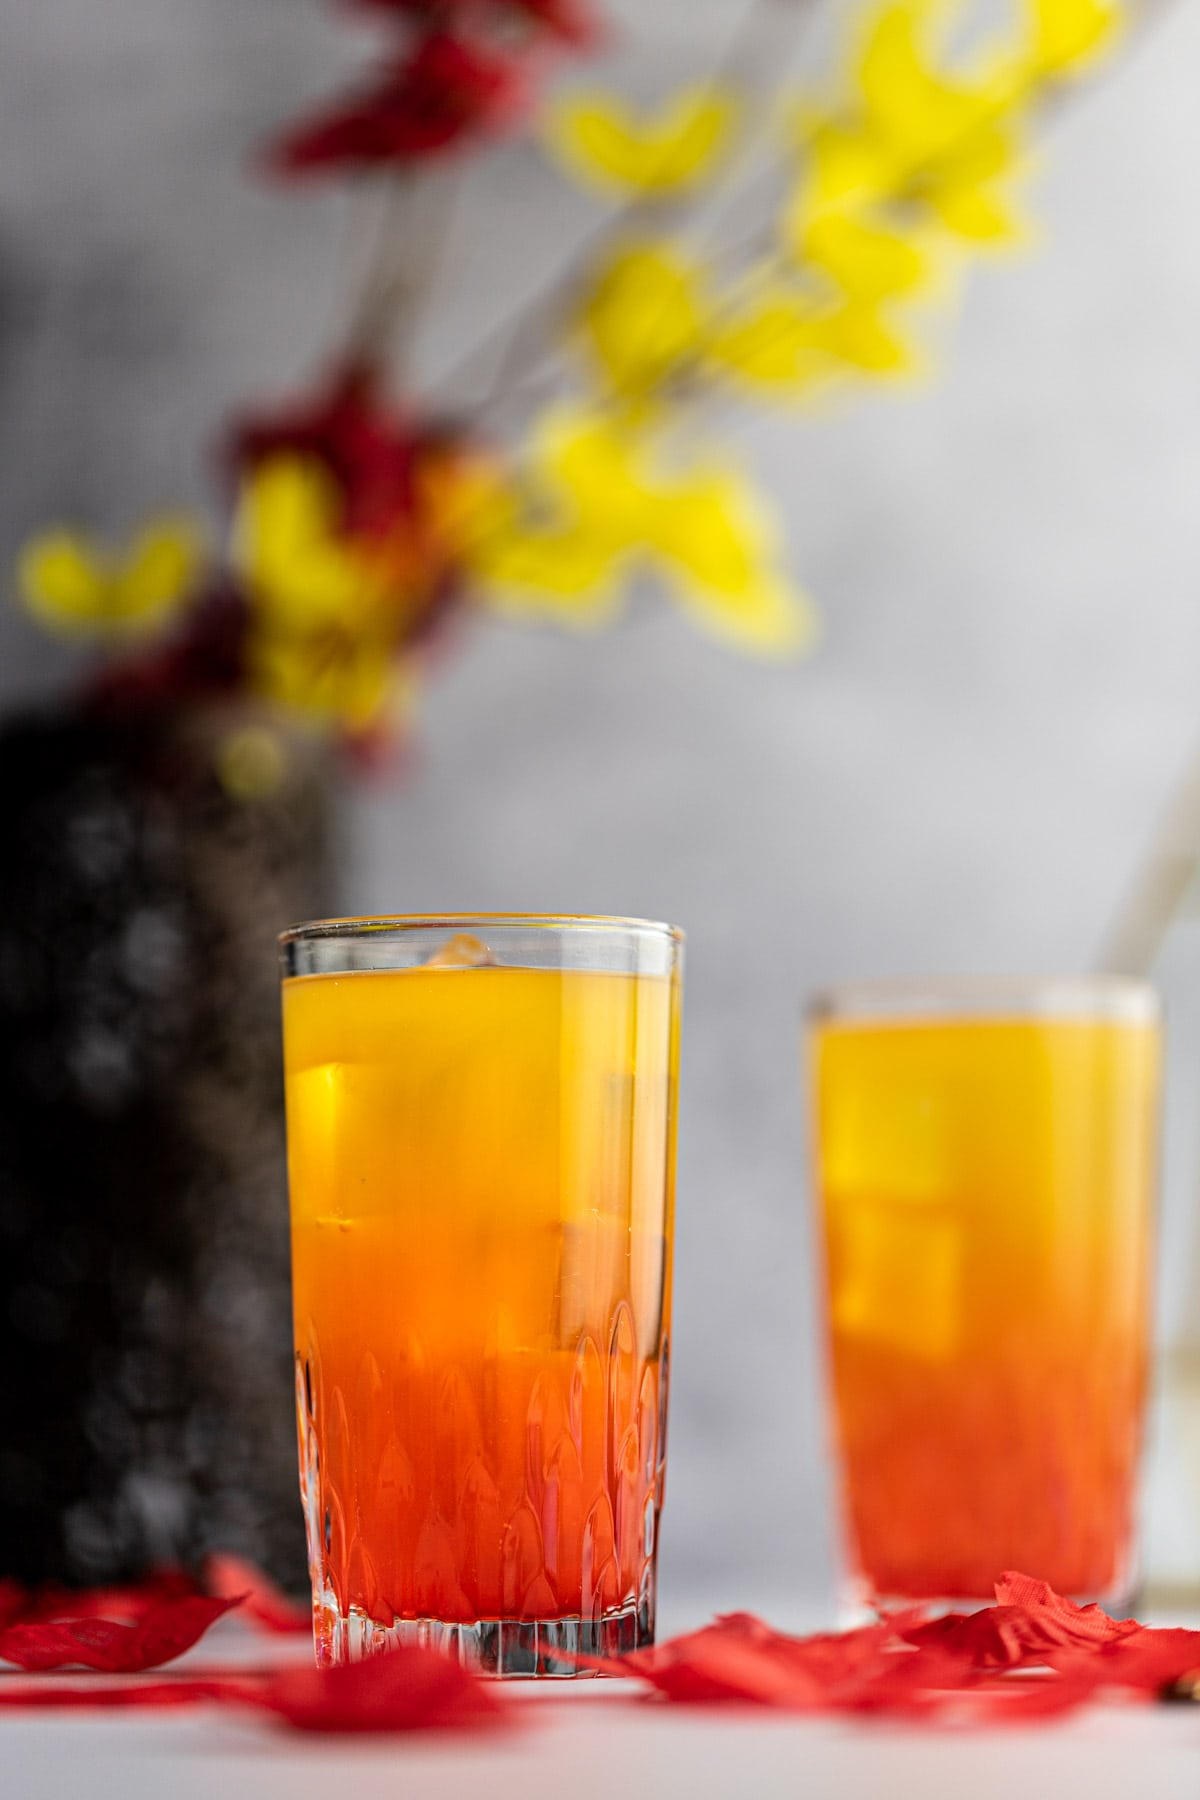 Two glasses of ombre amaretto sunrise cocktails, with red on the bottom and yellow on top, with yellow and red flowers in the background.